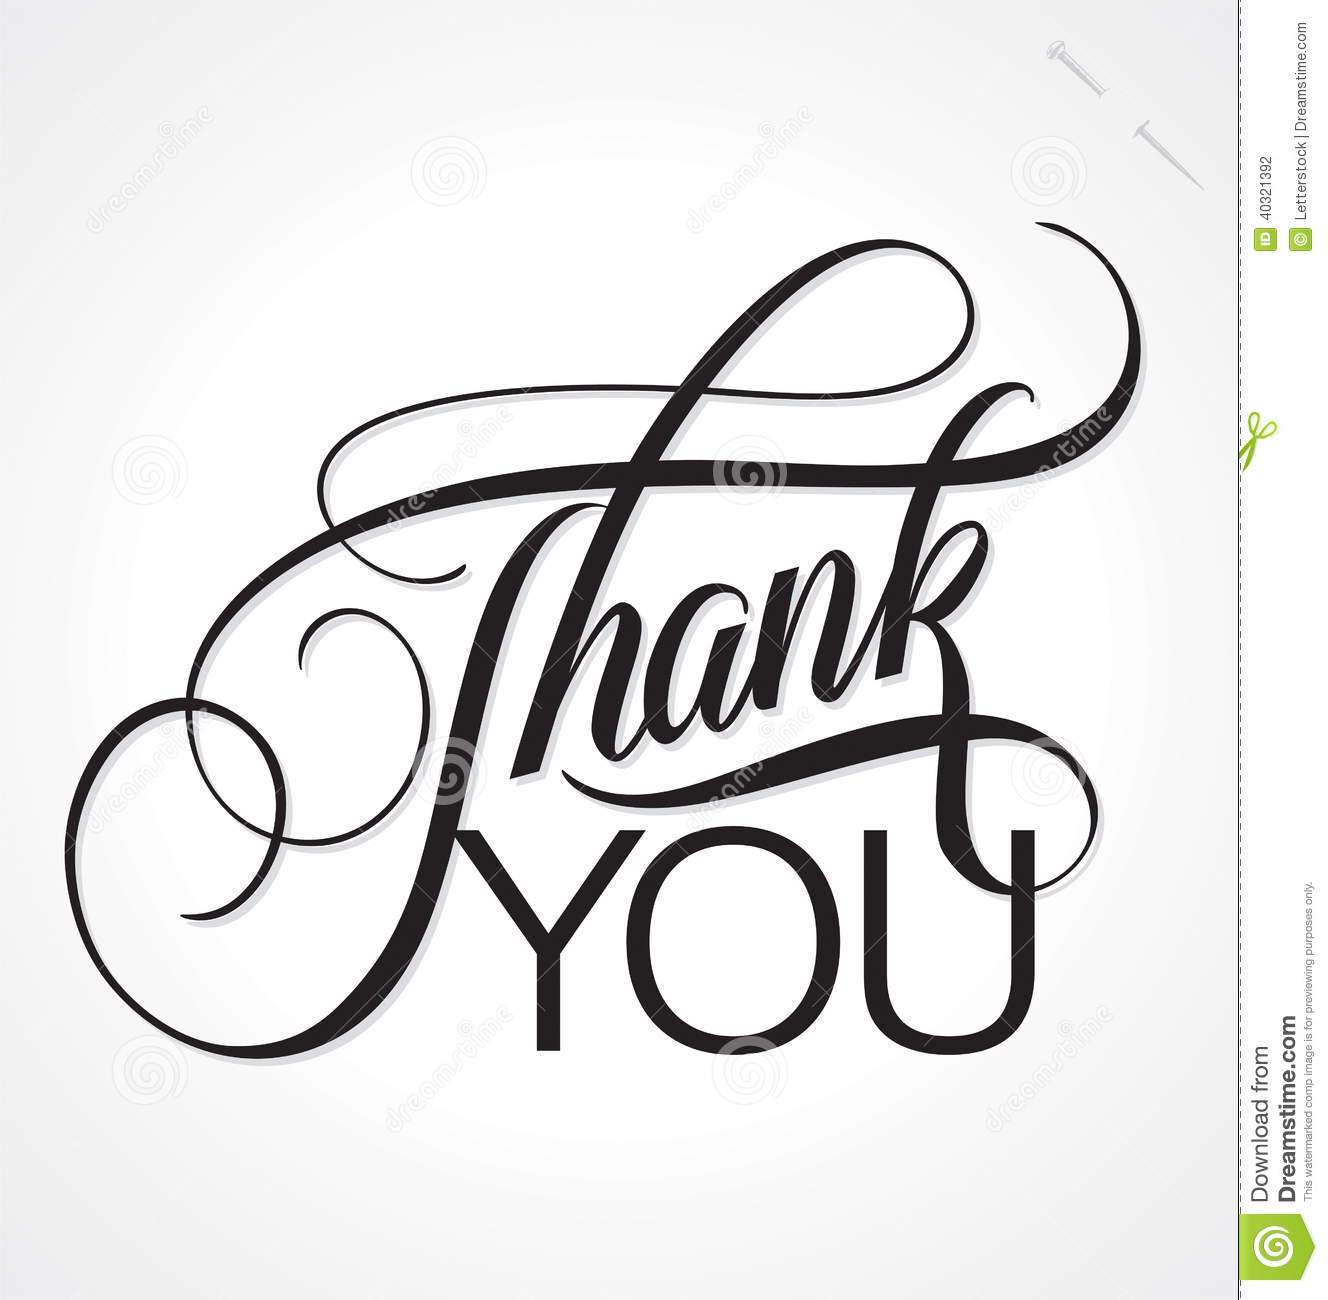 THANK YOU Hand Lettering Vector Stock